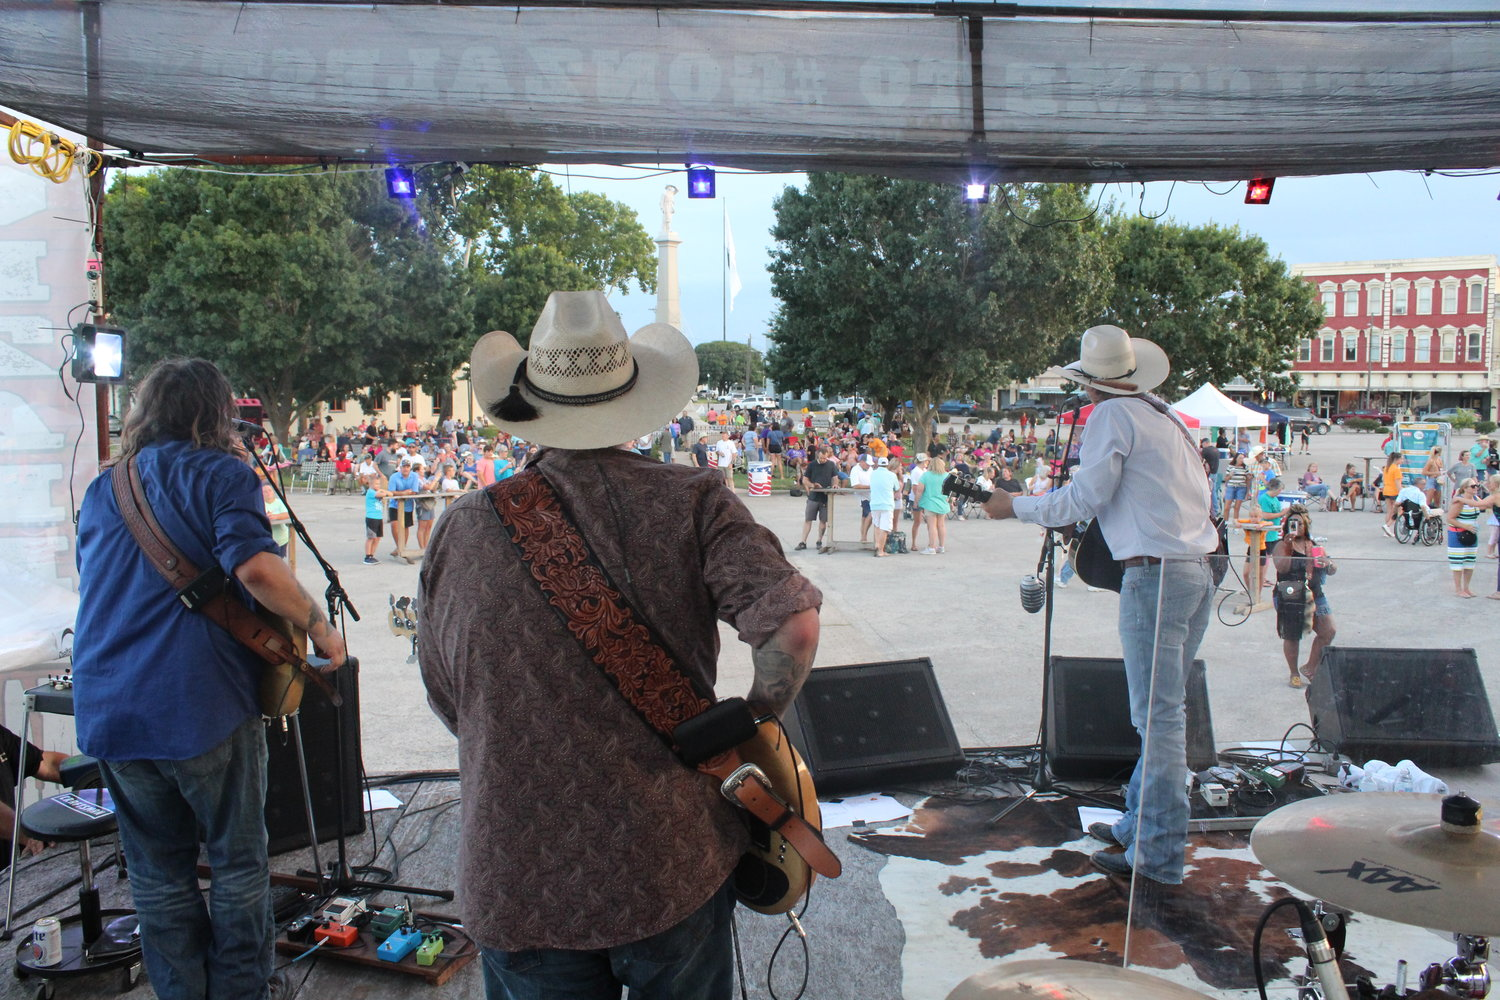 Stop by downtown Gonzales for Main Street's last summer concert of the season.